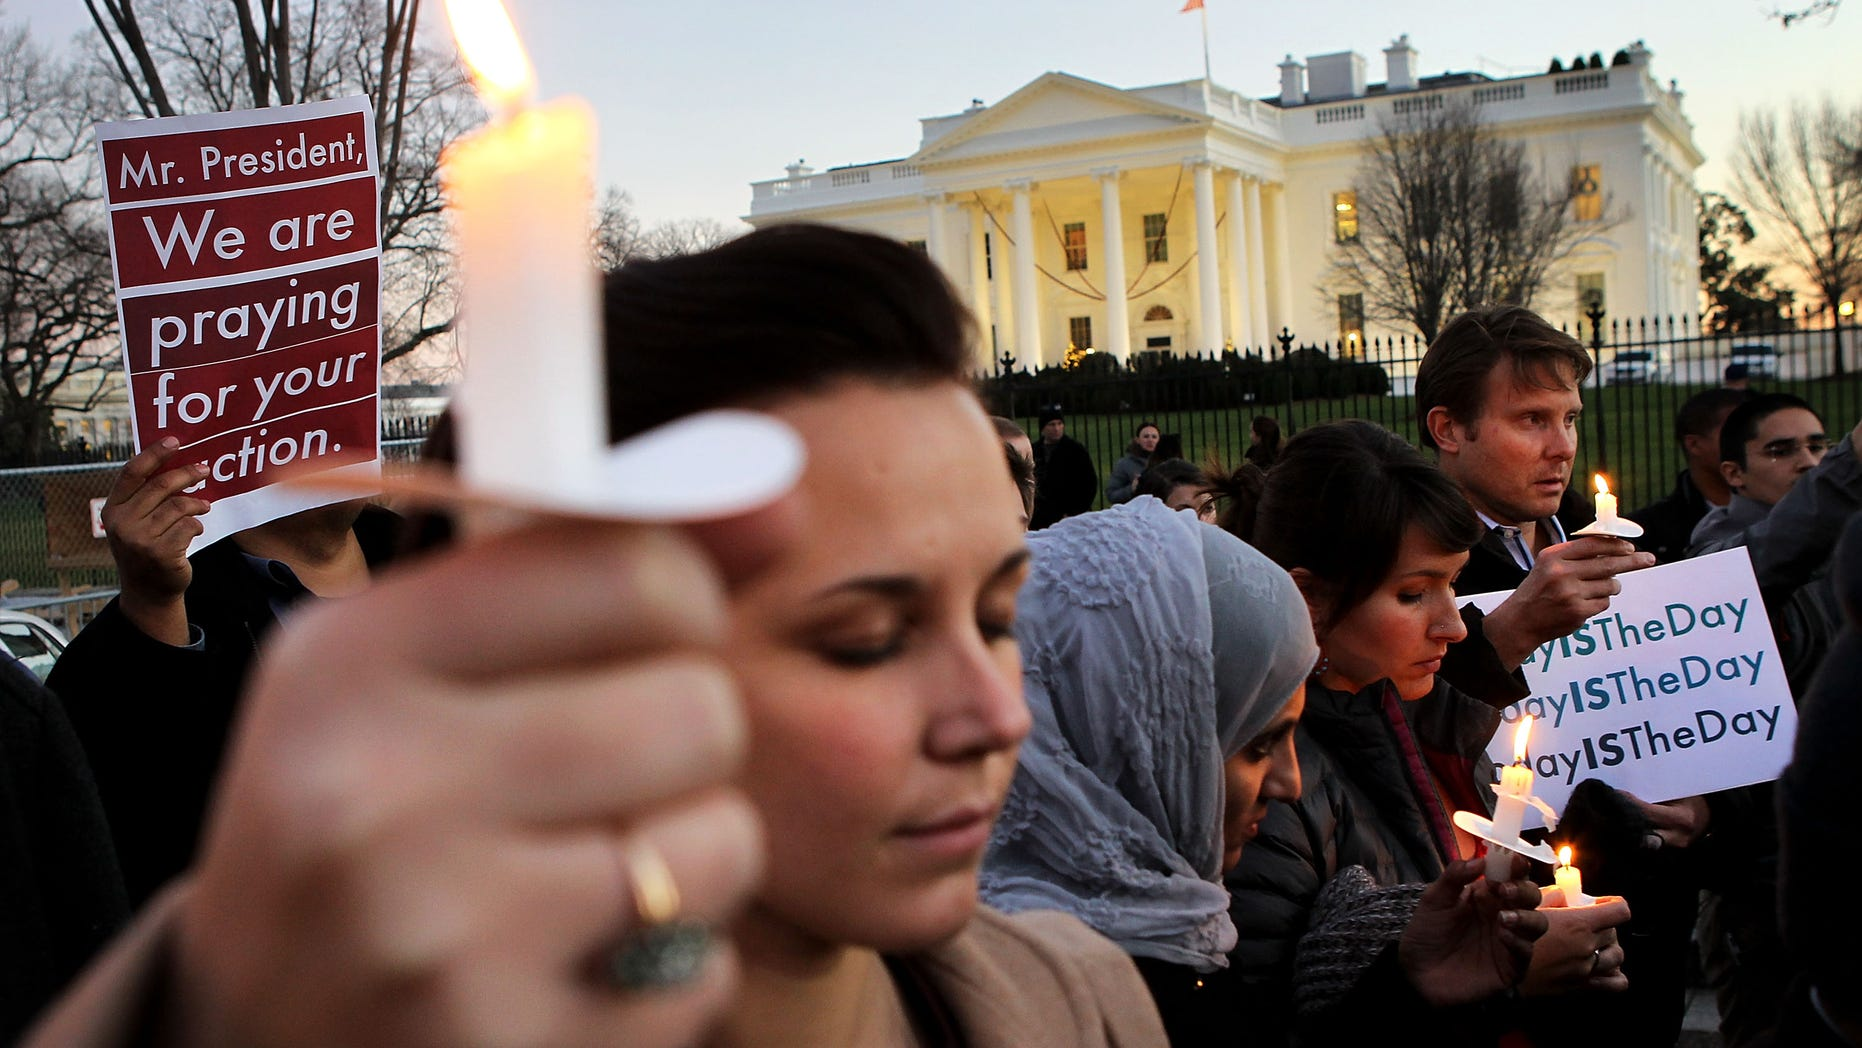 WASHINGTON, DC - DECEMBER 14:  People gather outside the White House to participate in a candle light vigil to remember the victims at the Sandy Hook Elementary School shooting in Newtown, Connecticut on December 14, 2012 in Washington, DC.  According to reports, there are about 27 dead, 18 children, after a gunman opened fire in at the Sandy Hook Elementary School. The shooter was also killed.  (Photo by Alex Wong/Getty Images)